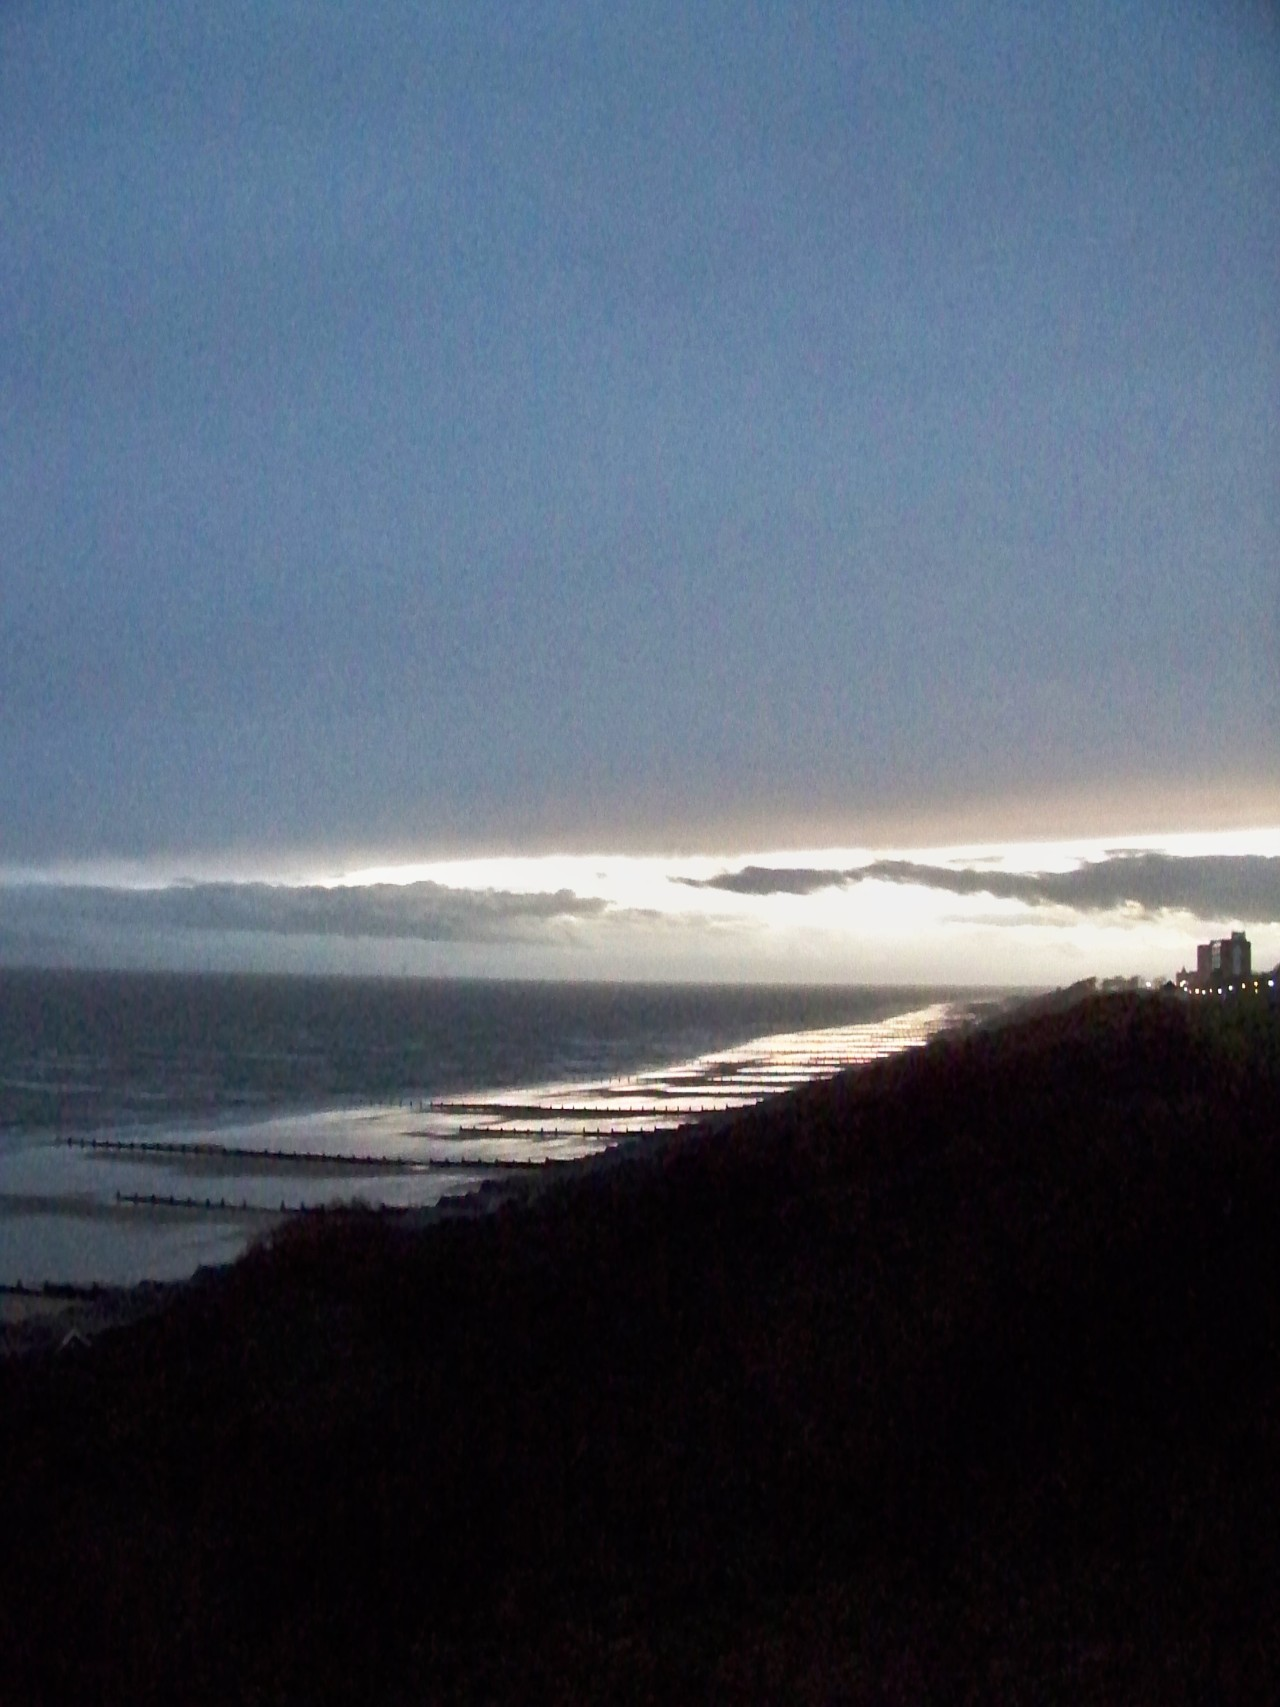 After our spell of ice cold and clear days we are back into Atlantic weather today; rain, wind and twilight by 3 o'clock.